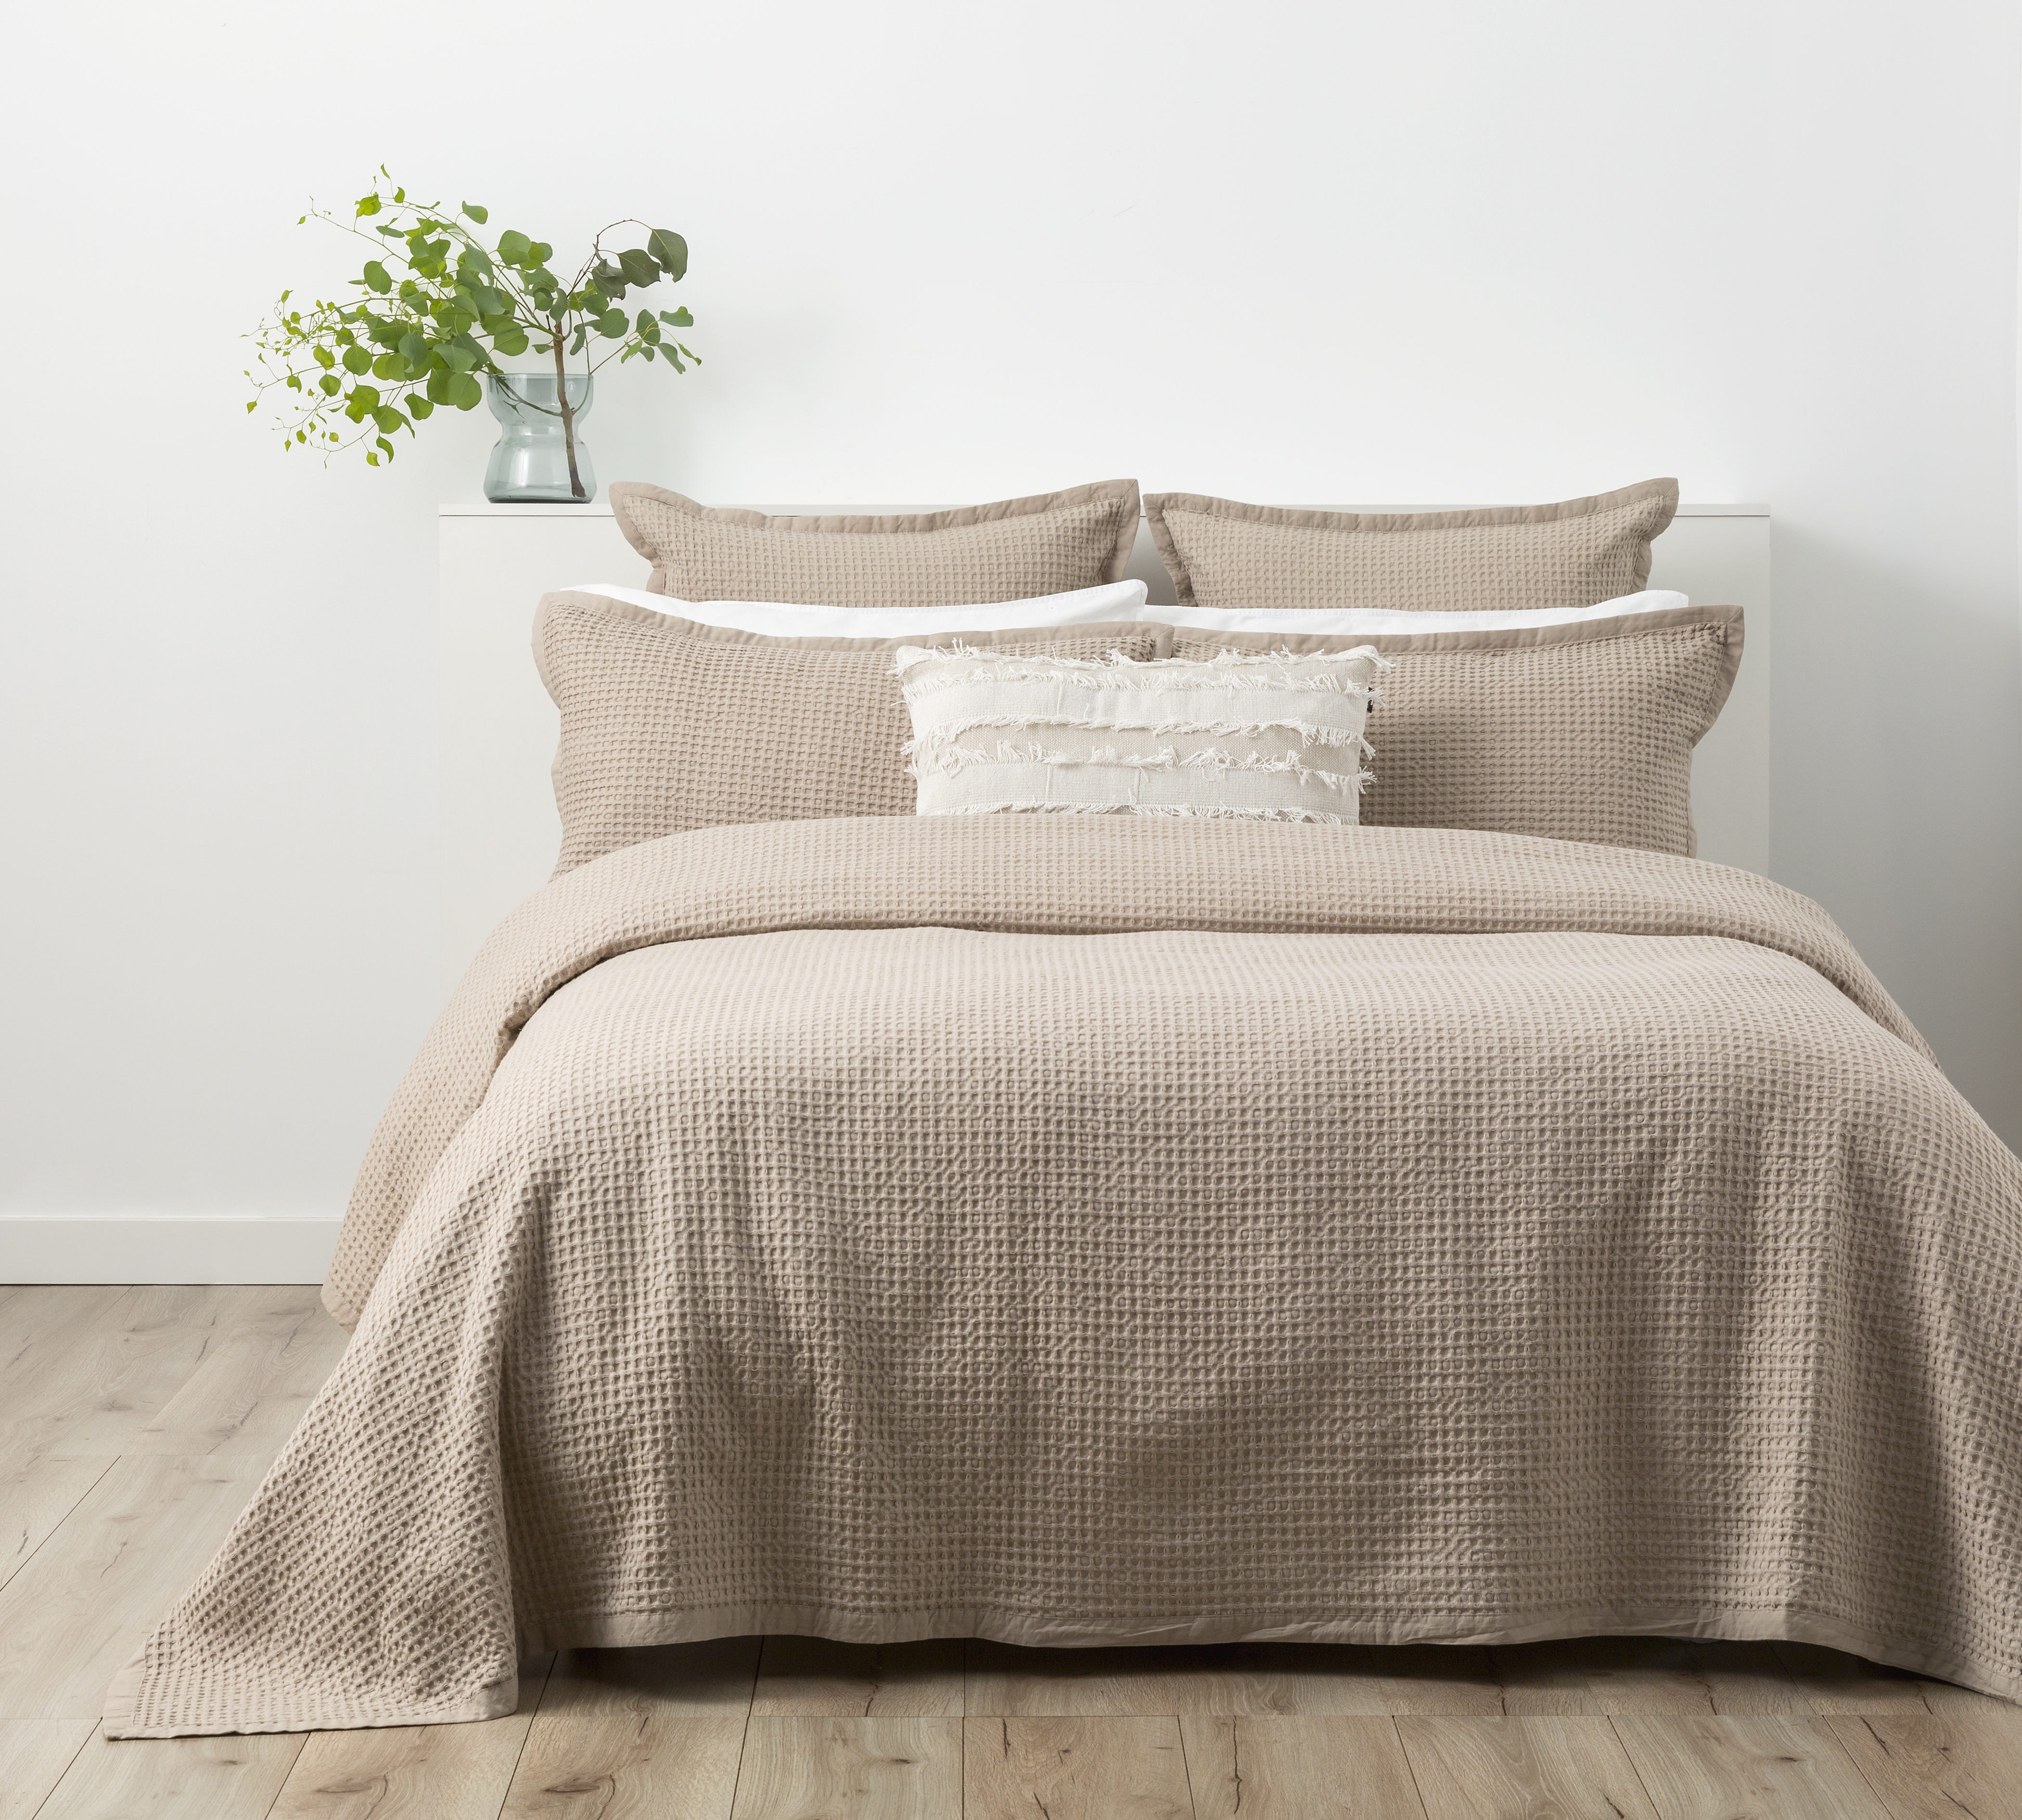 In2linen Waffle Blanket/Coverlette 100% Egyptian Cotton Soft wash |Linen